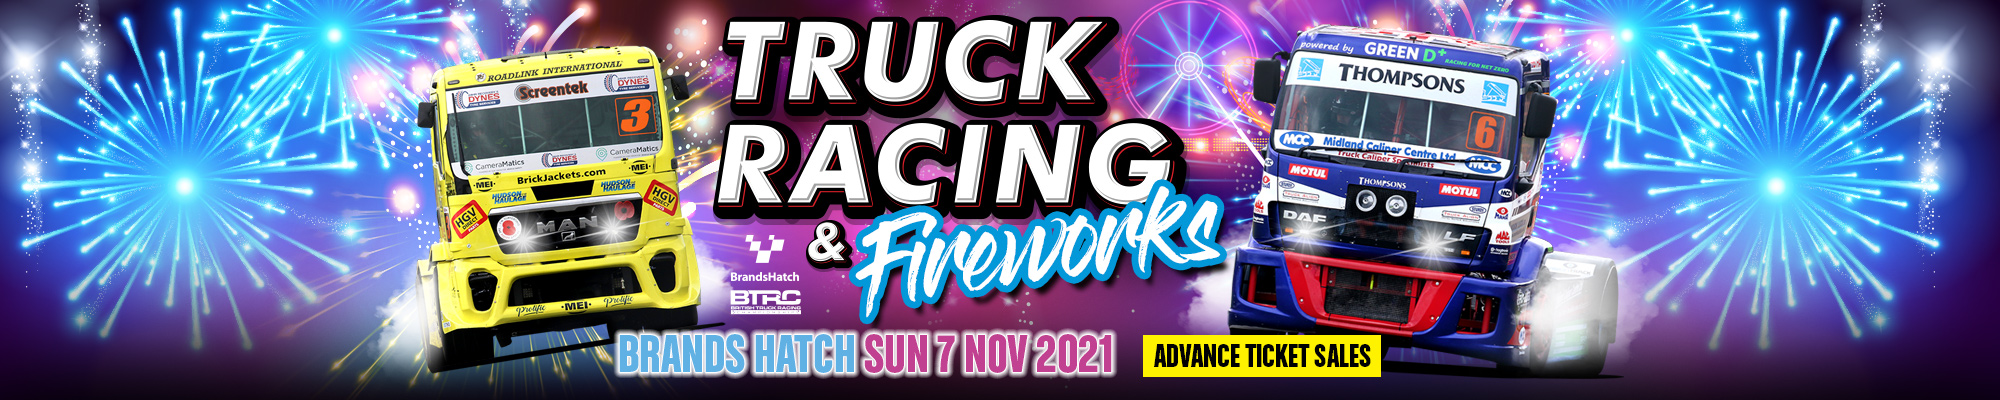 British Truck Racing & Fireworks